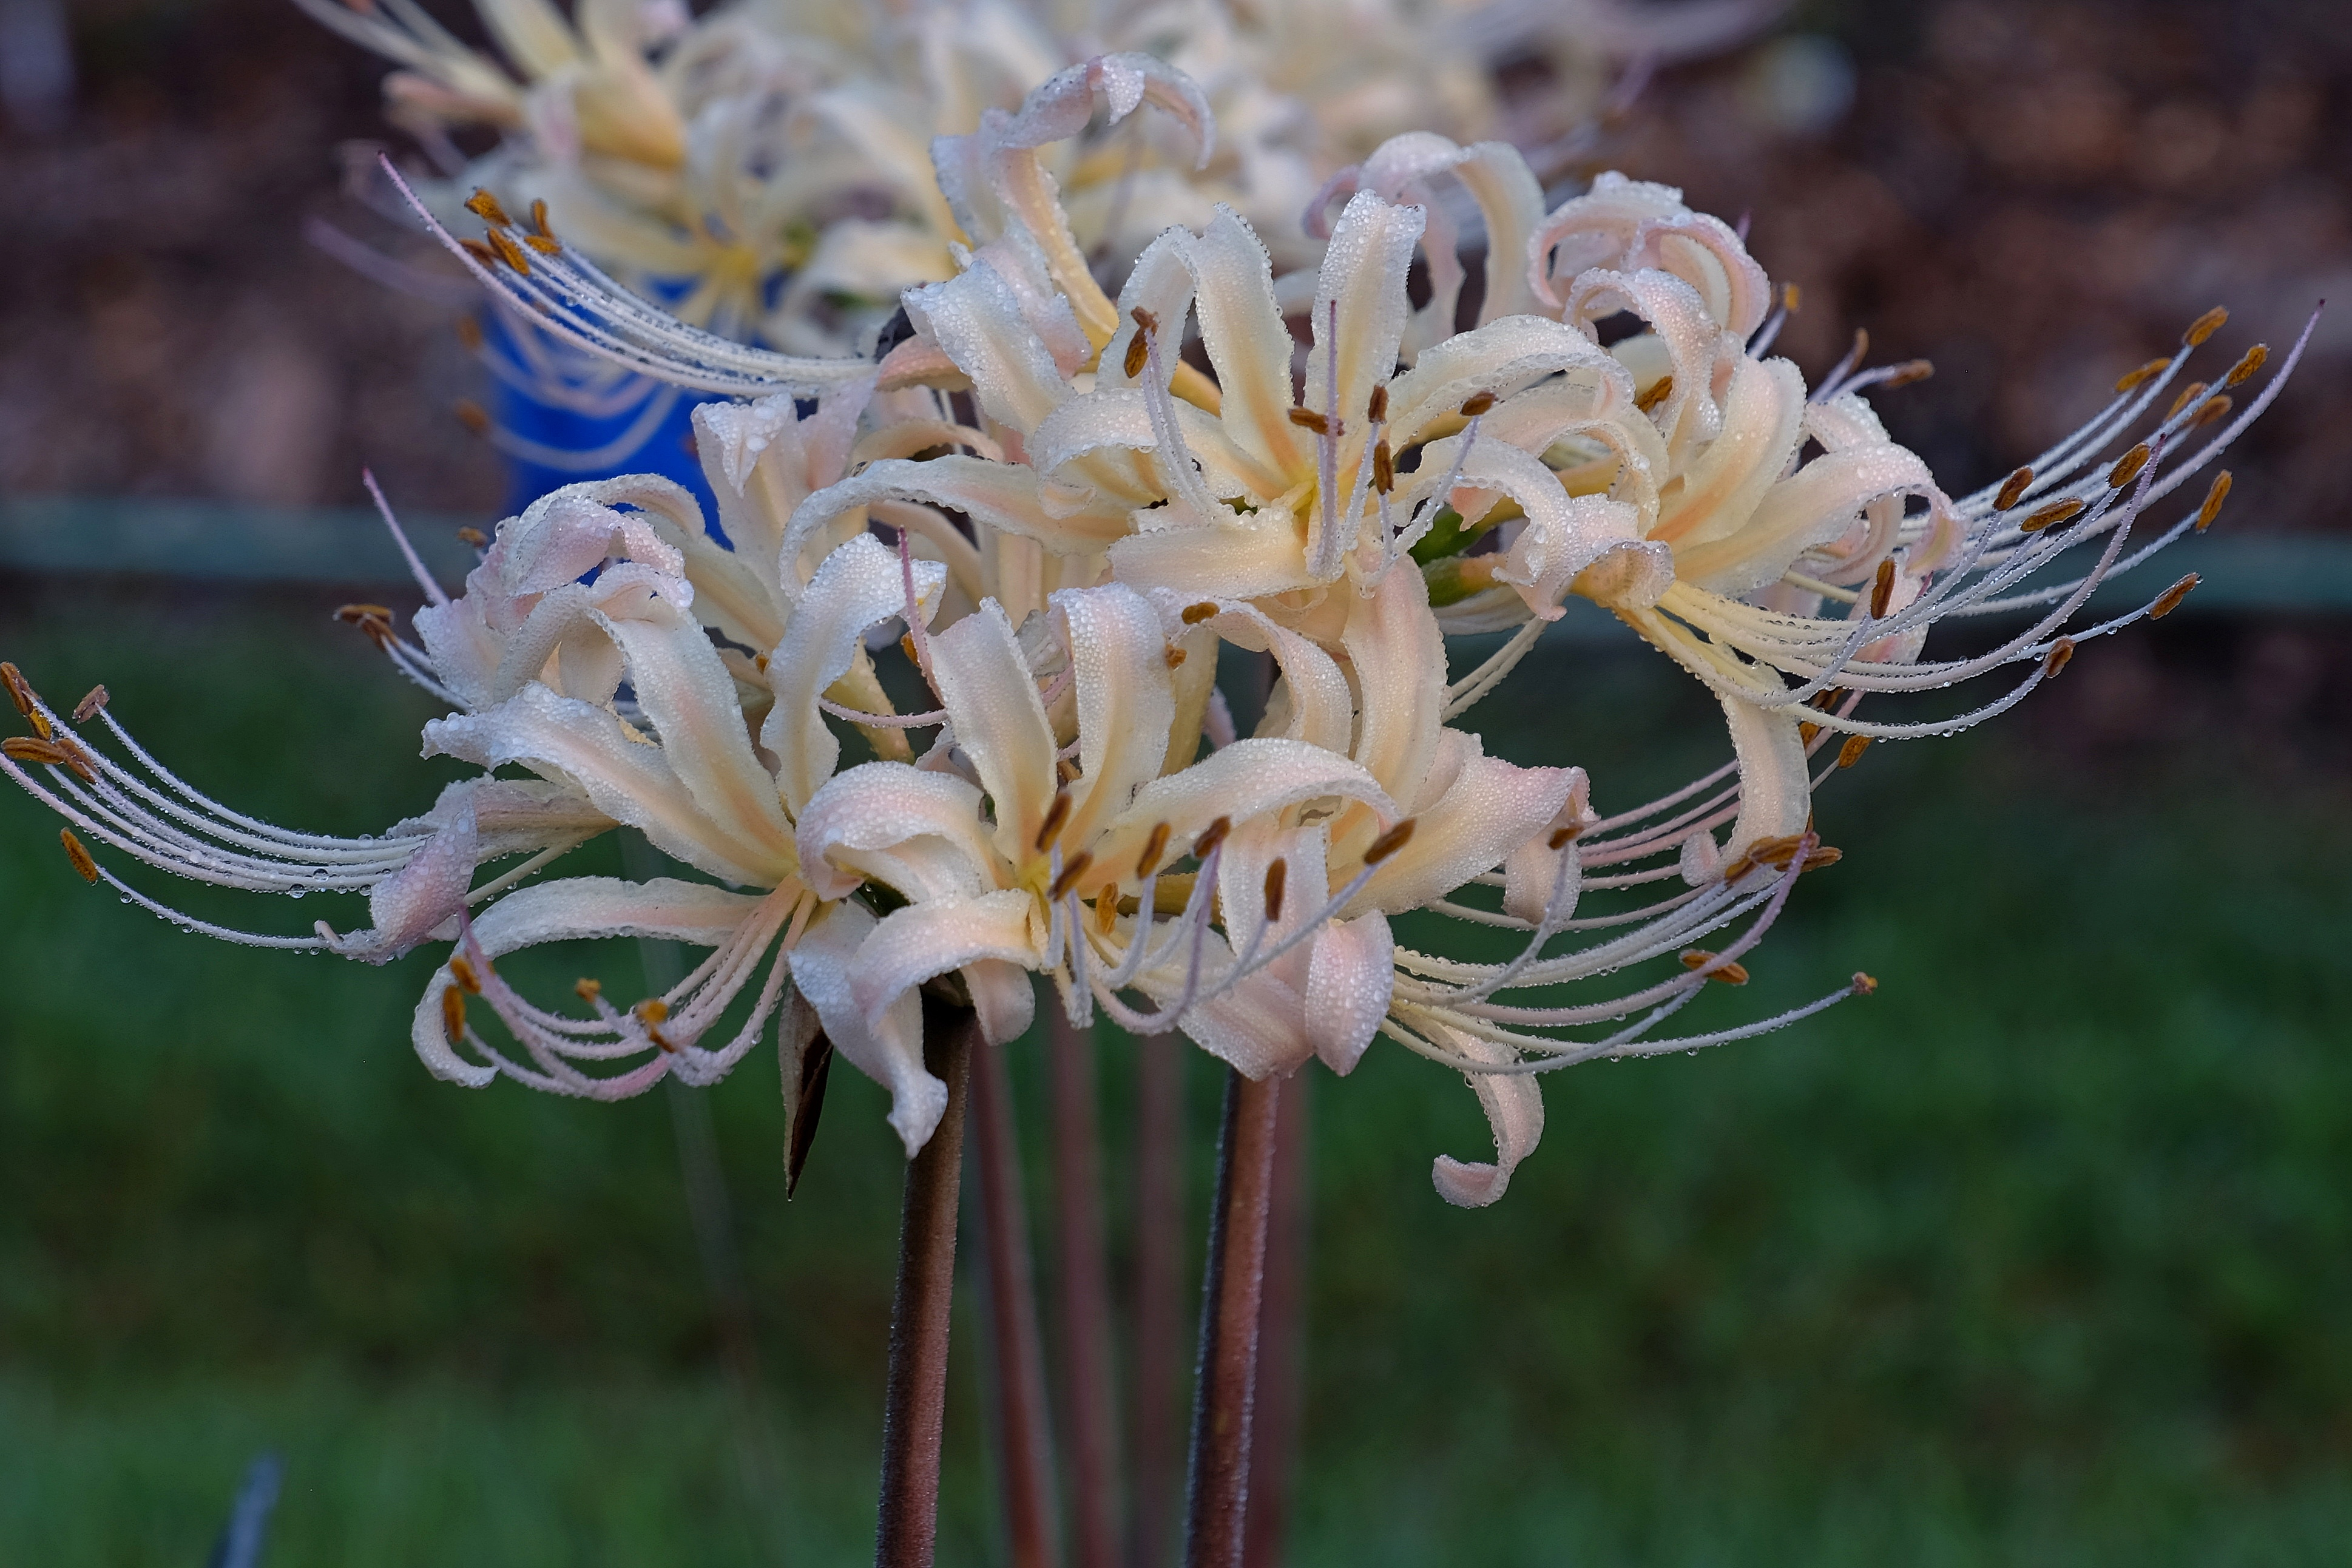 Lycoris x albiflora 'Phil's Gold' @ JLBG - a Phil Adams hybrid of Lycoris aurea x radiata - named by JLBG/PDN